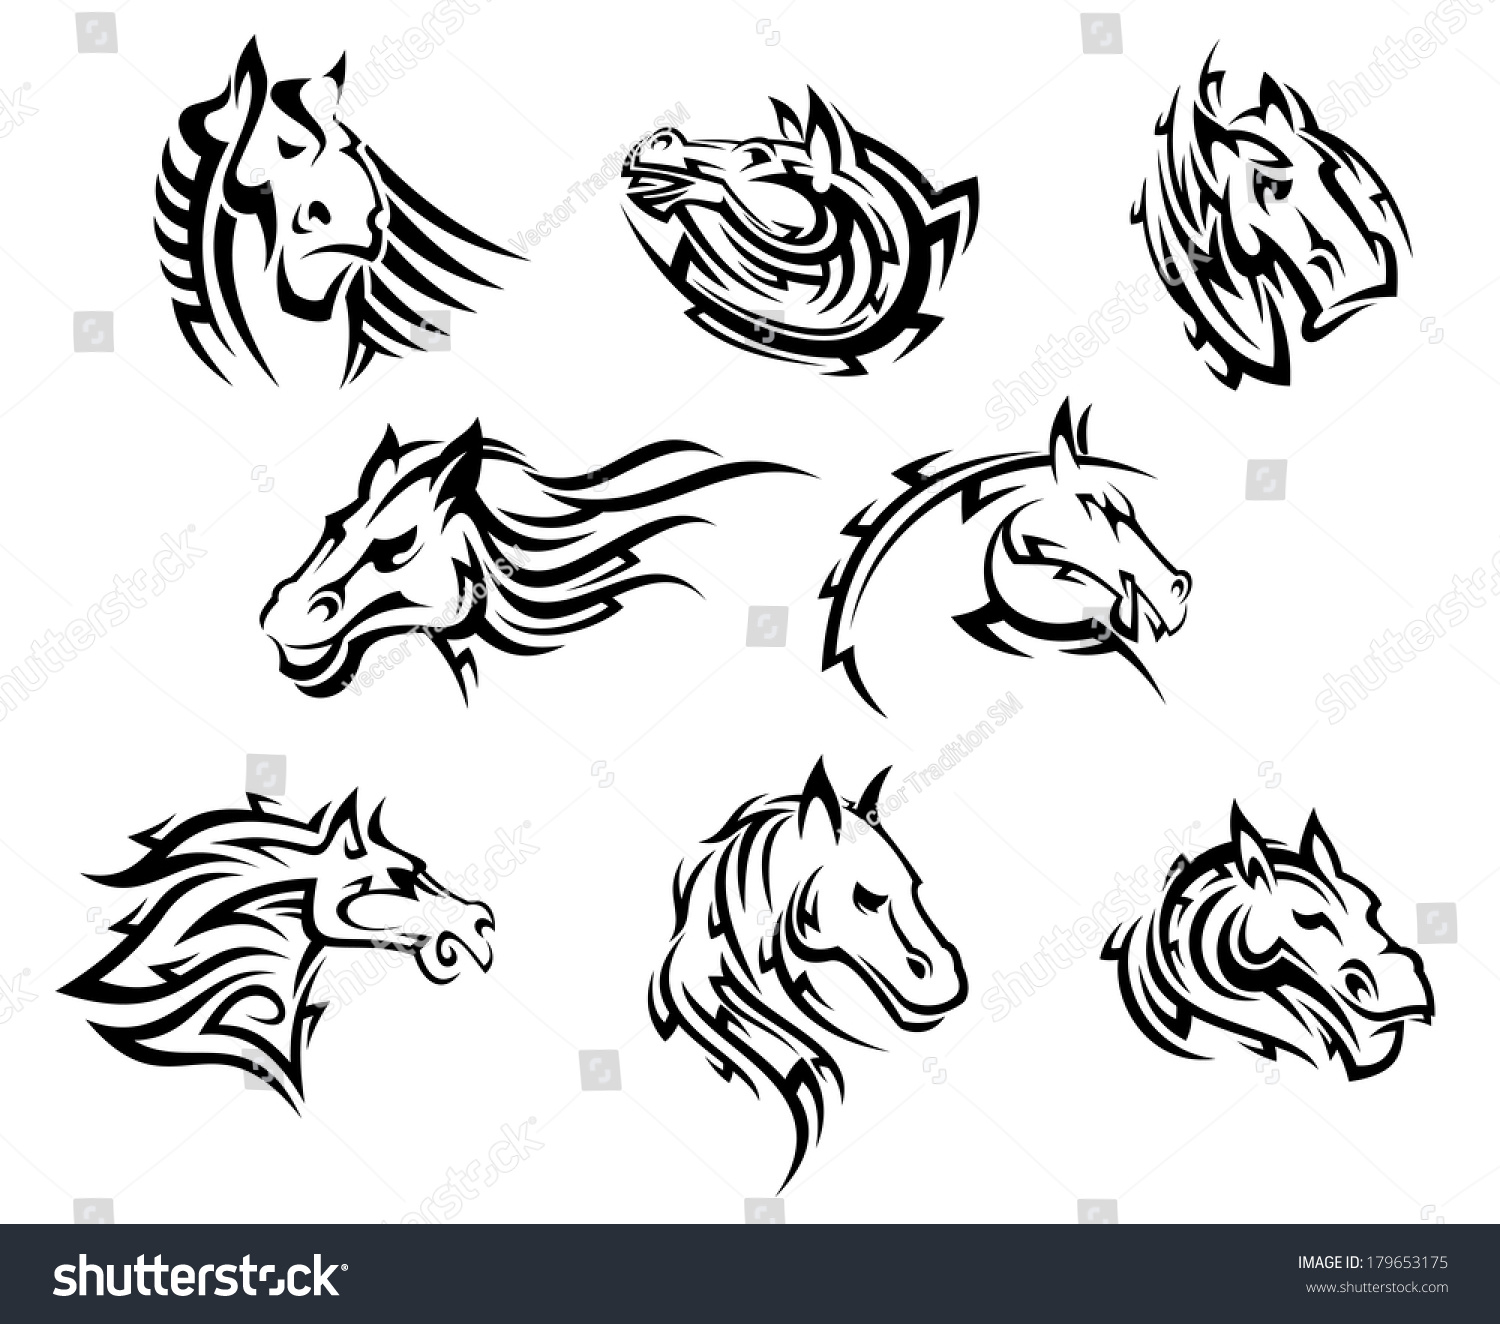 Tribal-Tattoos stock-vector-collection-of-eight-different-horse-tribal-tattoos-logo-designs-in-black-and-white-179653175